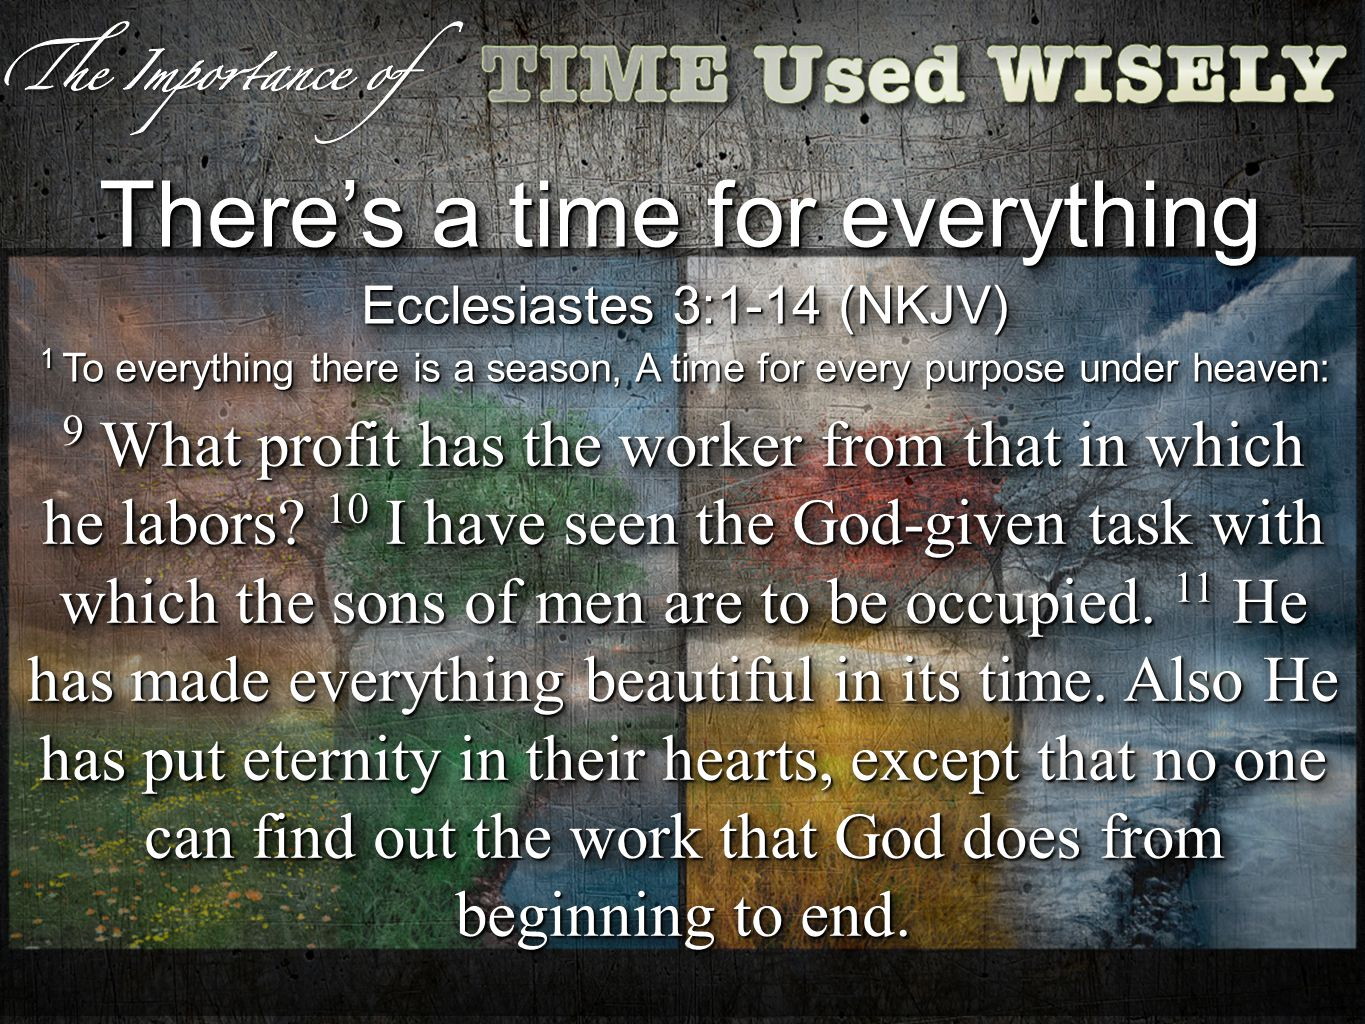 Ephesians 5:8-21 (NKJV) 18 And do not be drunk with wine, in which is dissipation; but be filled with the Spirit, 19 speaking to one another in psalms and hymns and spiritual songs, singing and making melody in your heart to the Lord, 20 giving thanks always for all things to God the Father in the name of our Lord Jesus Christ, 21 submitting to one another in the fear of God.